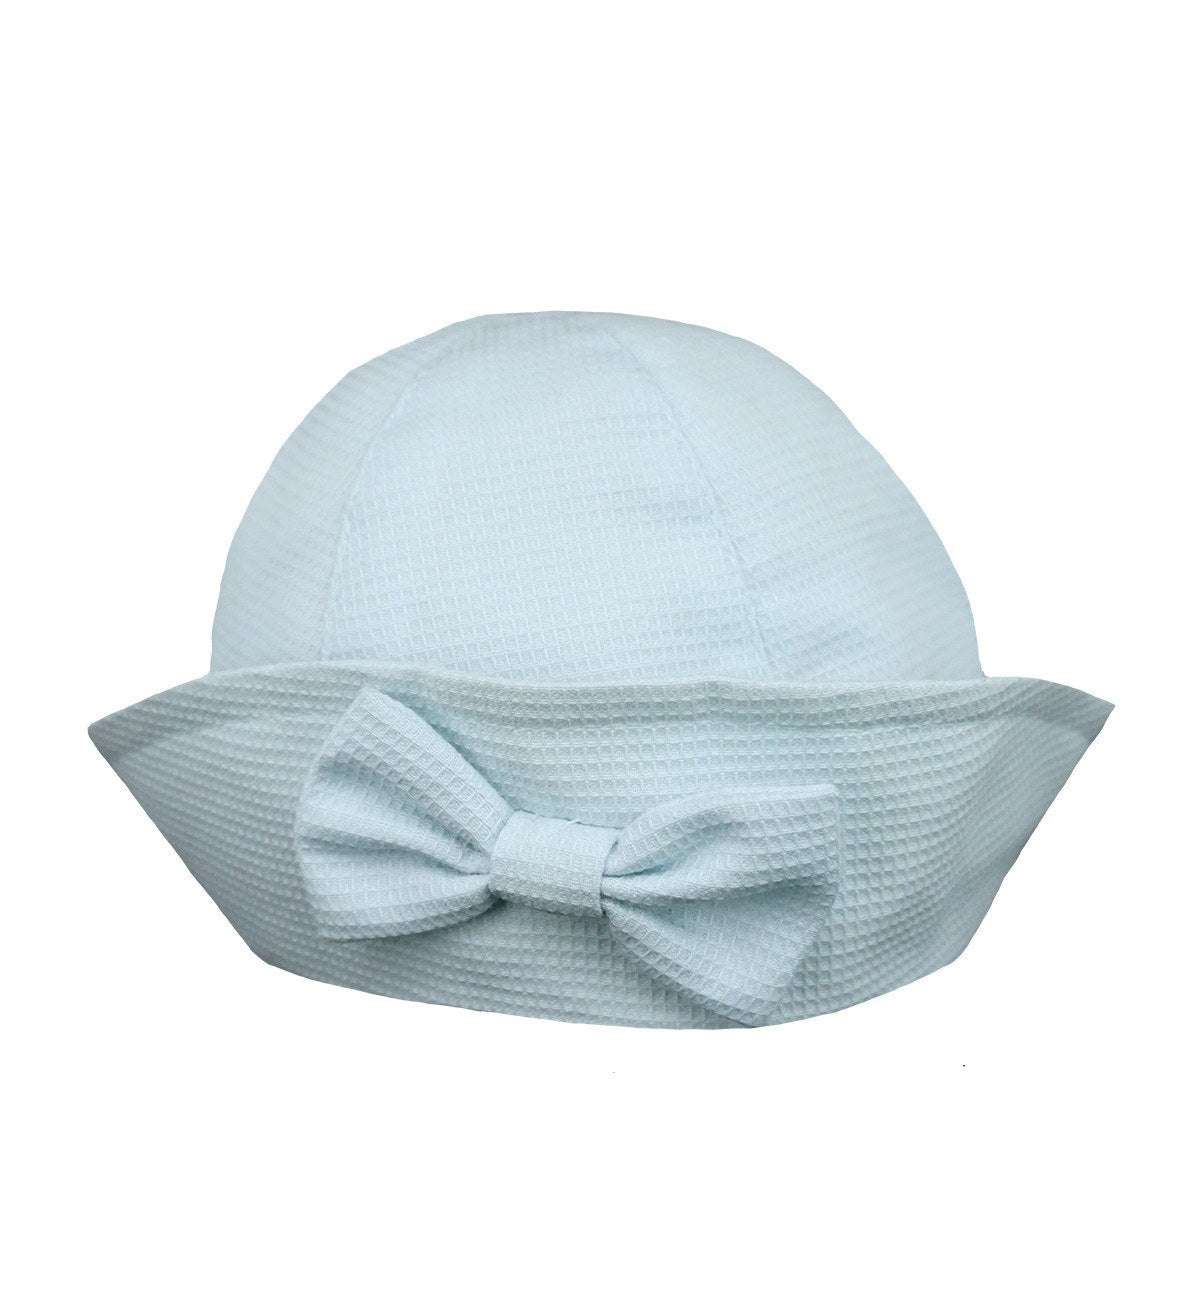 Spanish baby clothes | baby Hat | Baby blue honey pique hat |babymaC